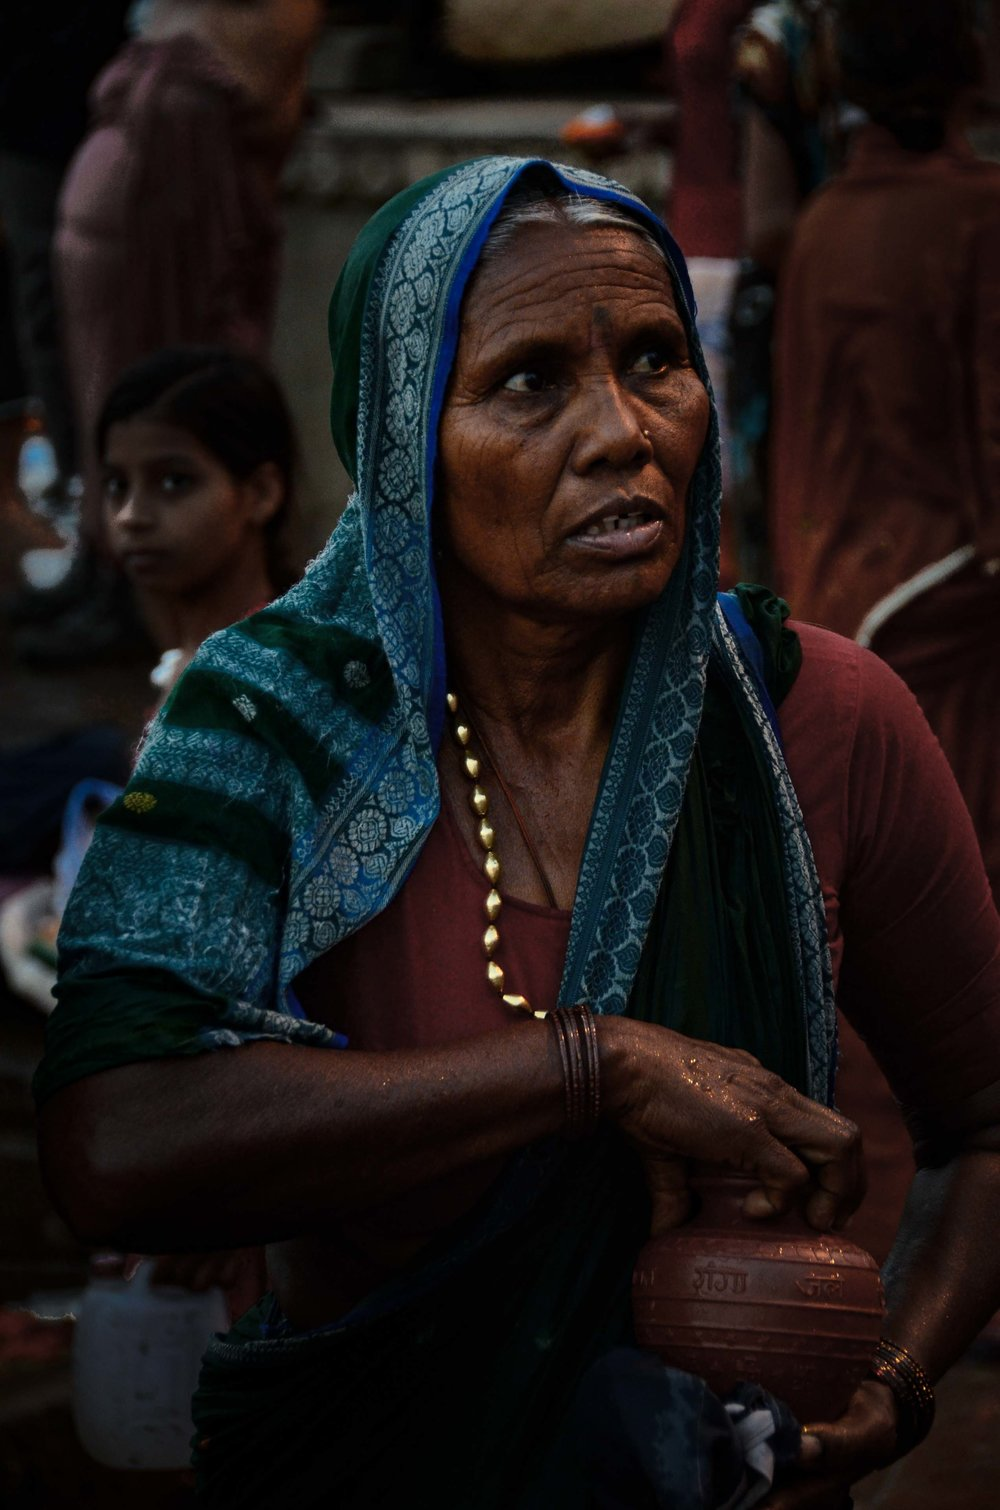 Woman with Urn (preparing to scatter ashes into the Ganges River), Varanasi, India 2012